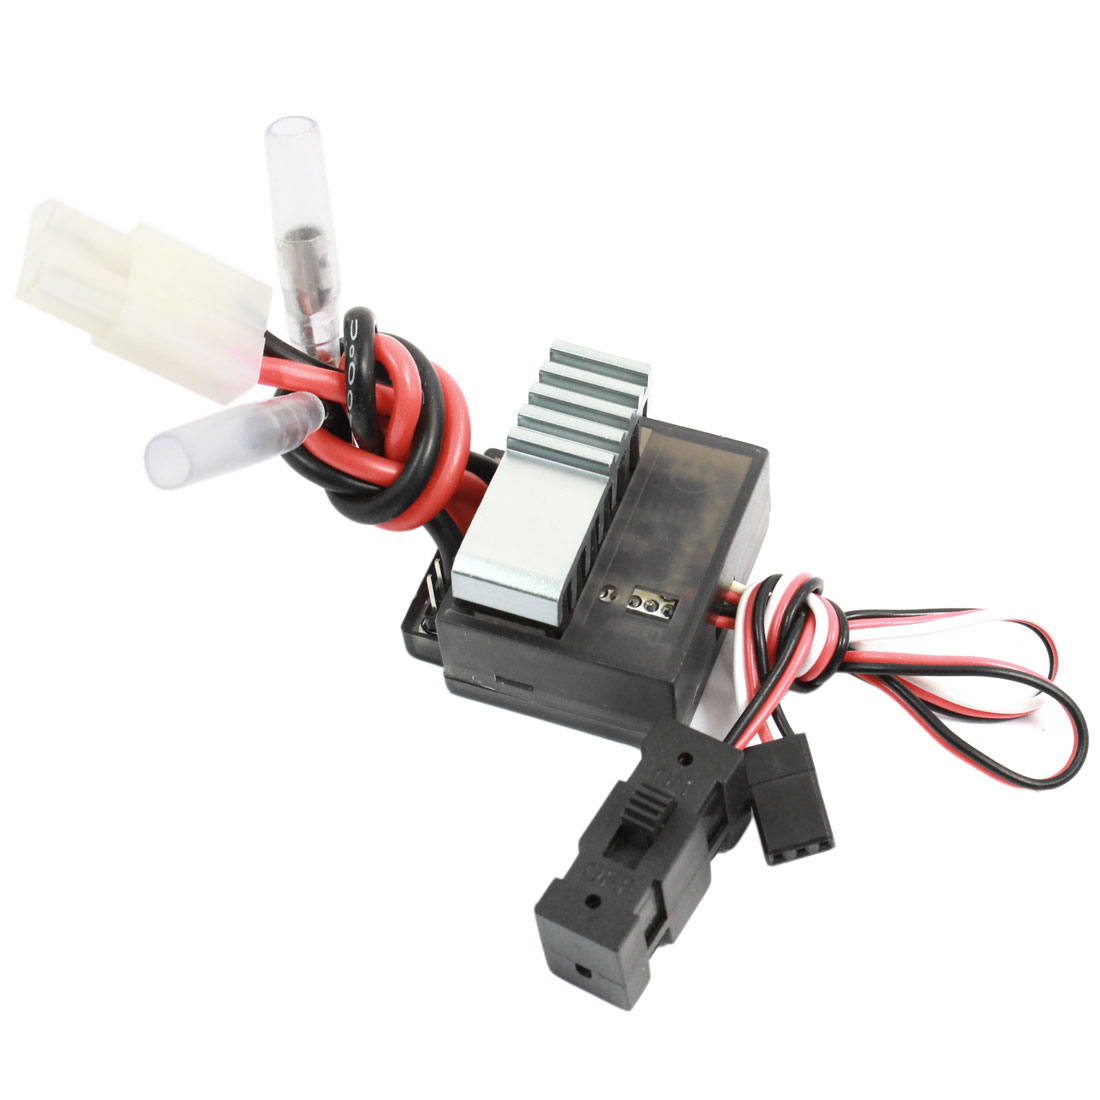 03018 03058 320A Brushed ESC Bidirectional Speed Control for 1/16 1/10 RC Car Truck Buggy